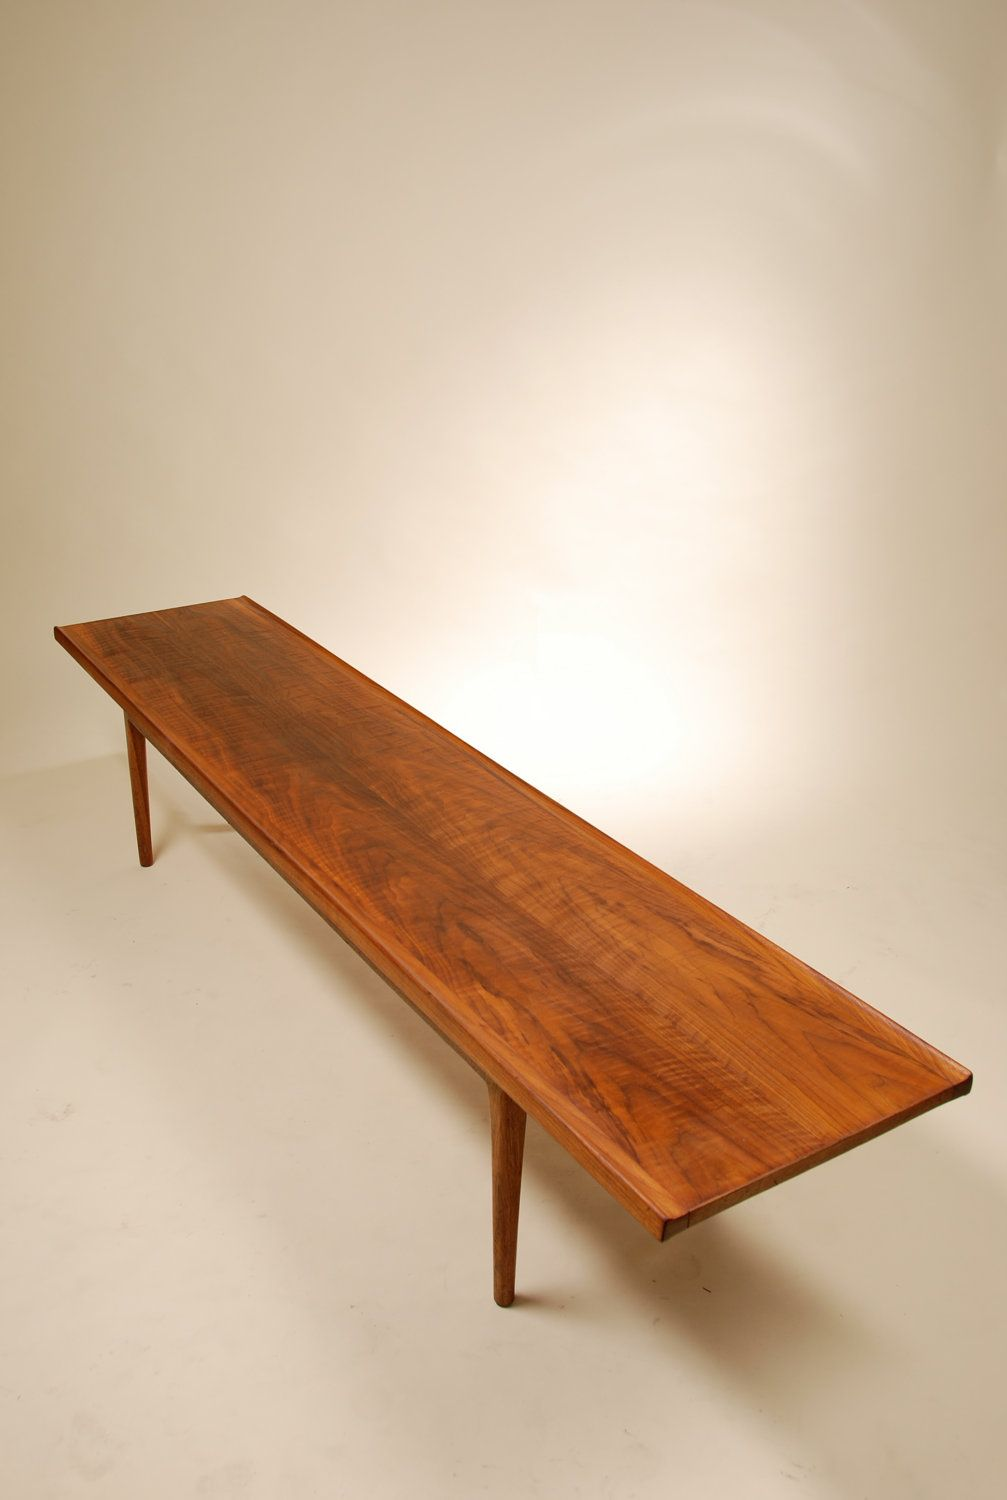 Kipp Stewart; Walnut Bench Table for Drexel, 1950s.